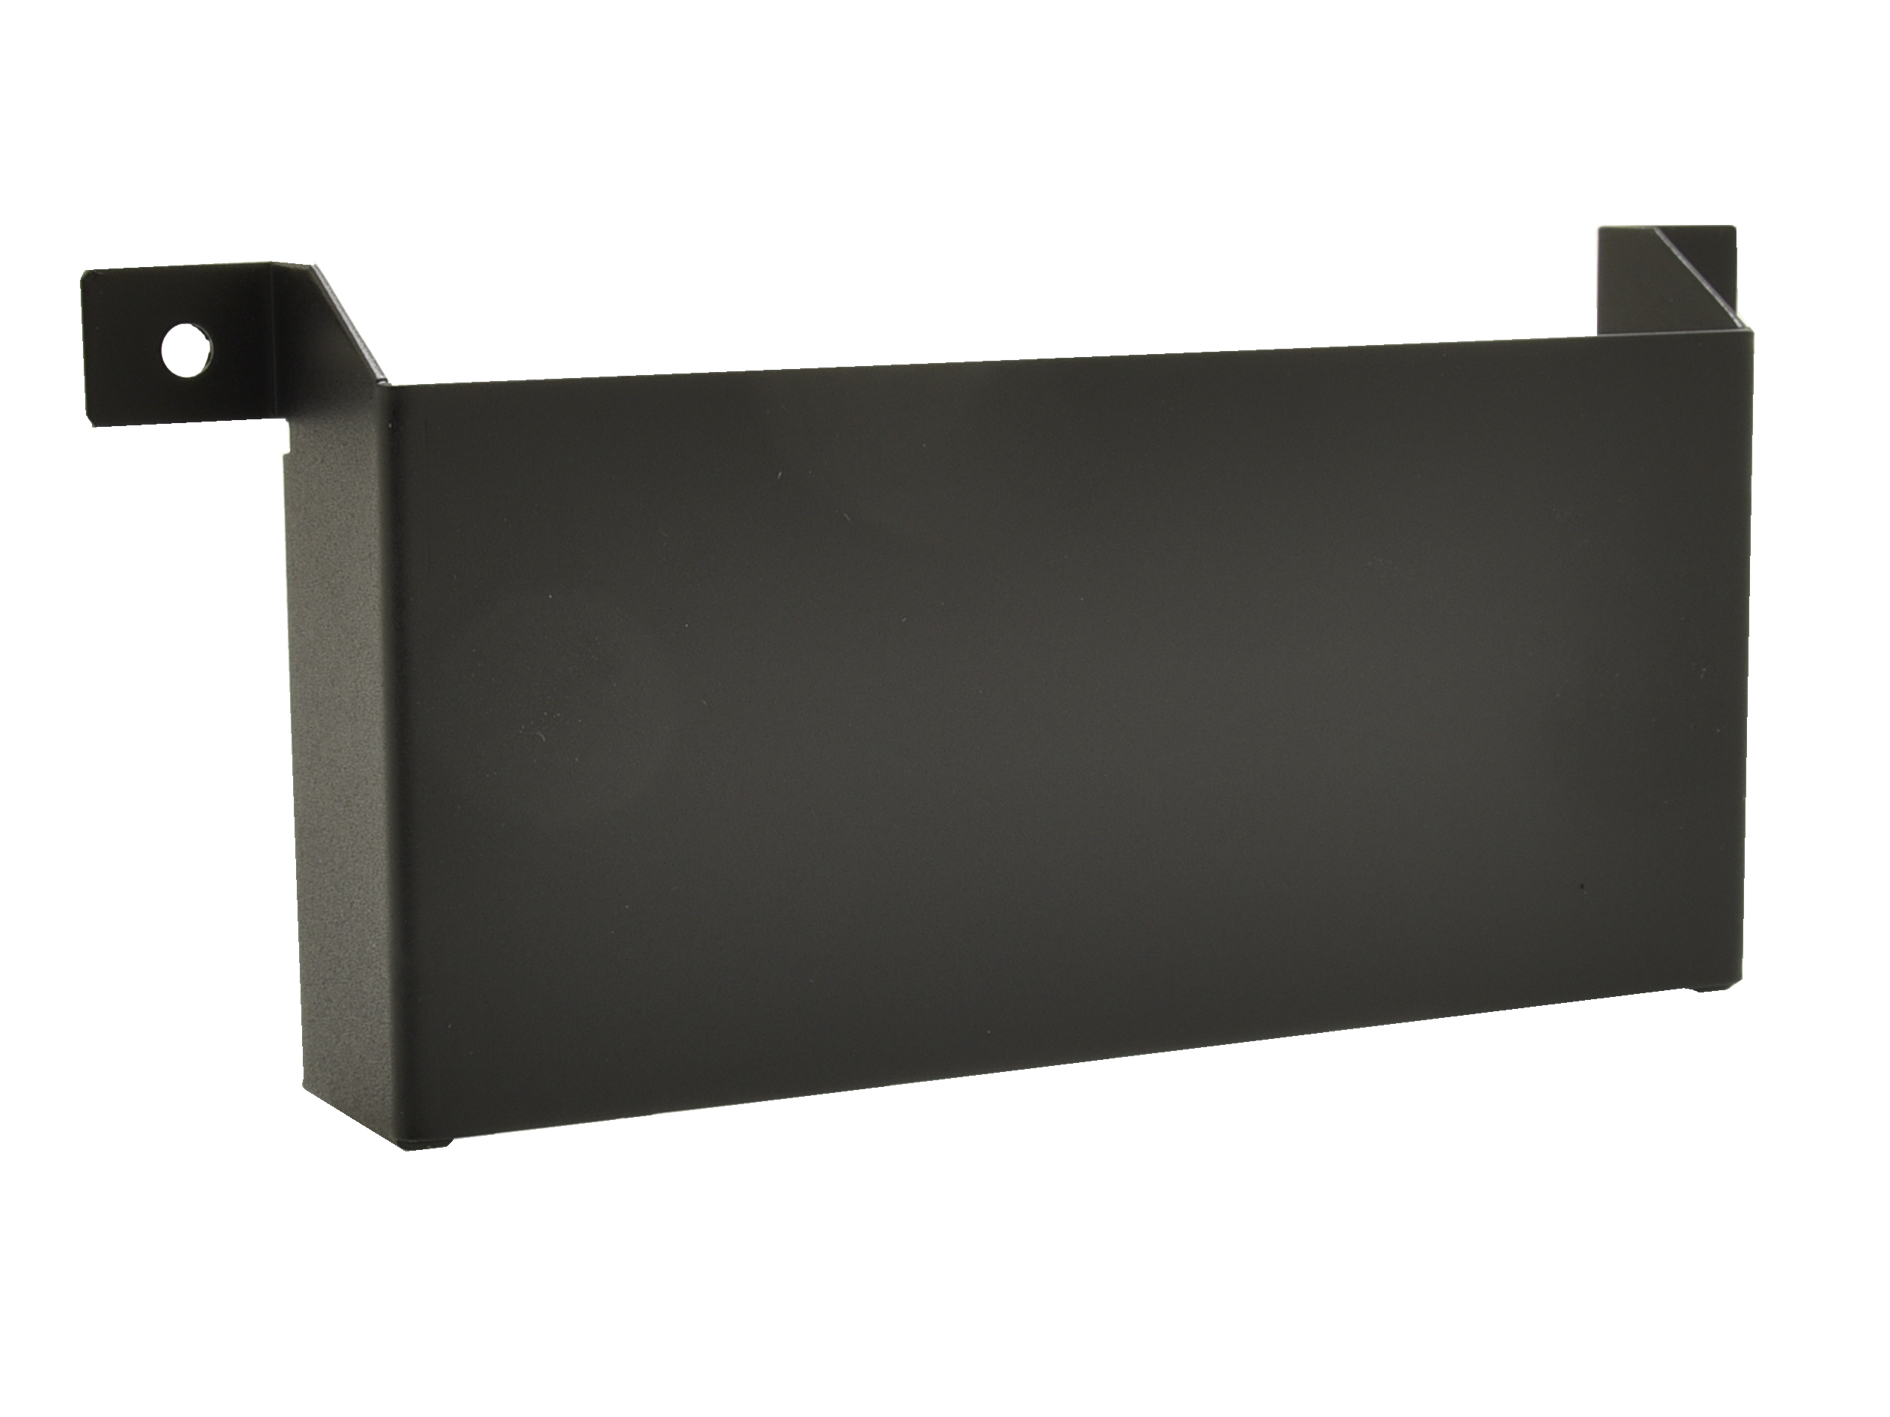 Holder for wall mounting